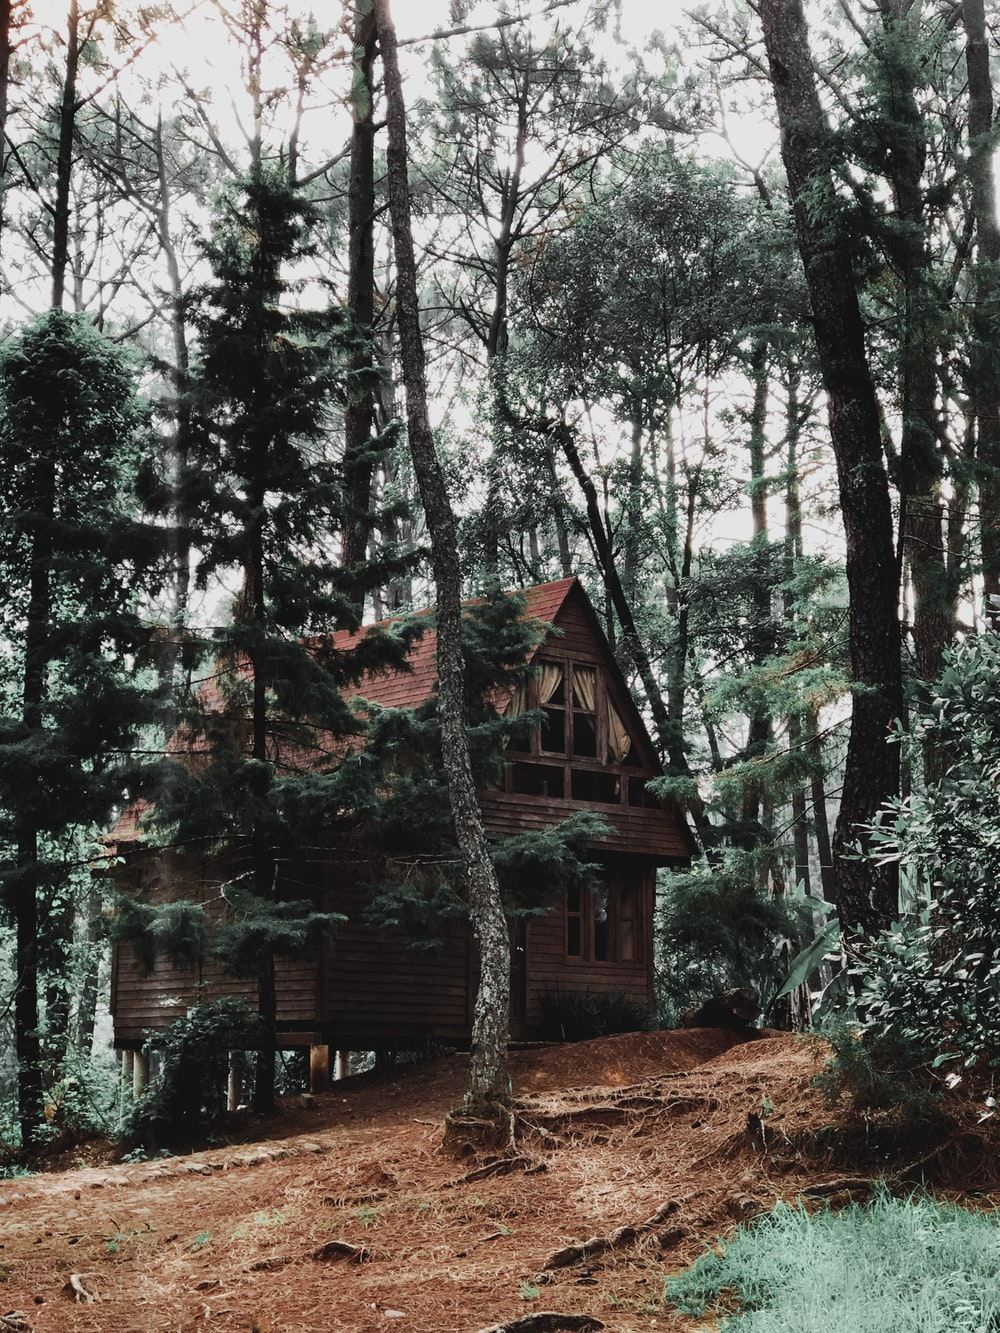 brown wooden house in middle of forest